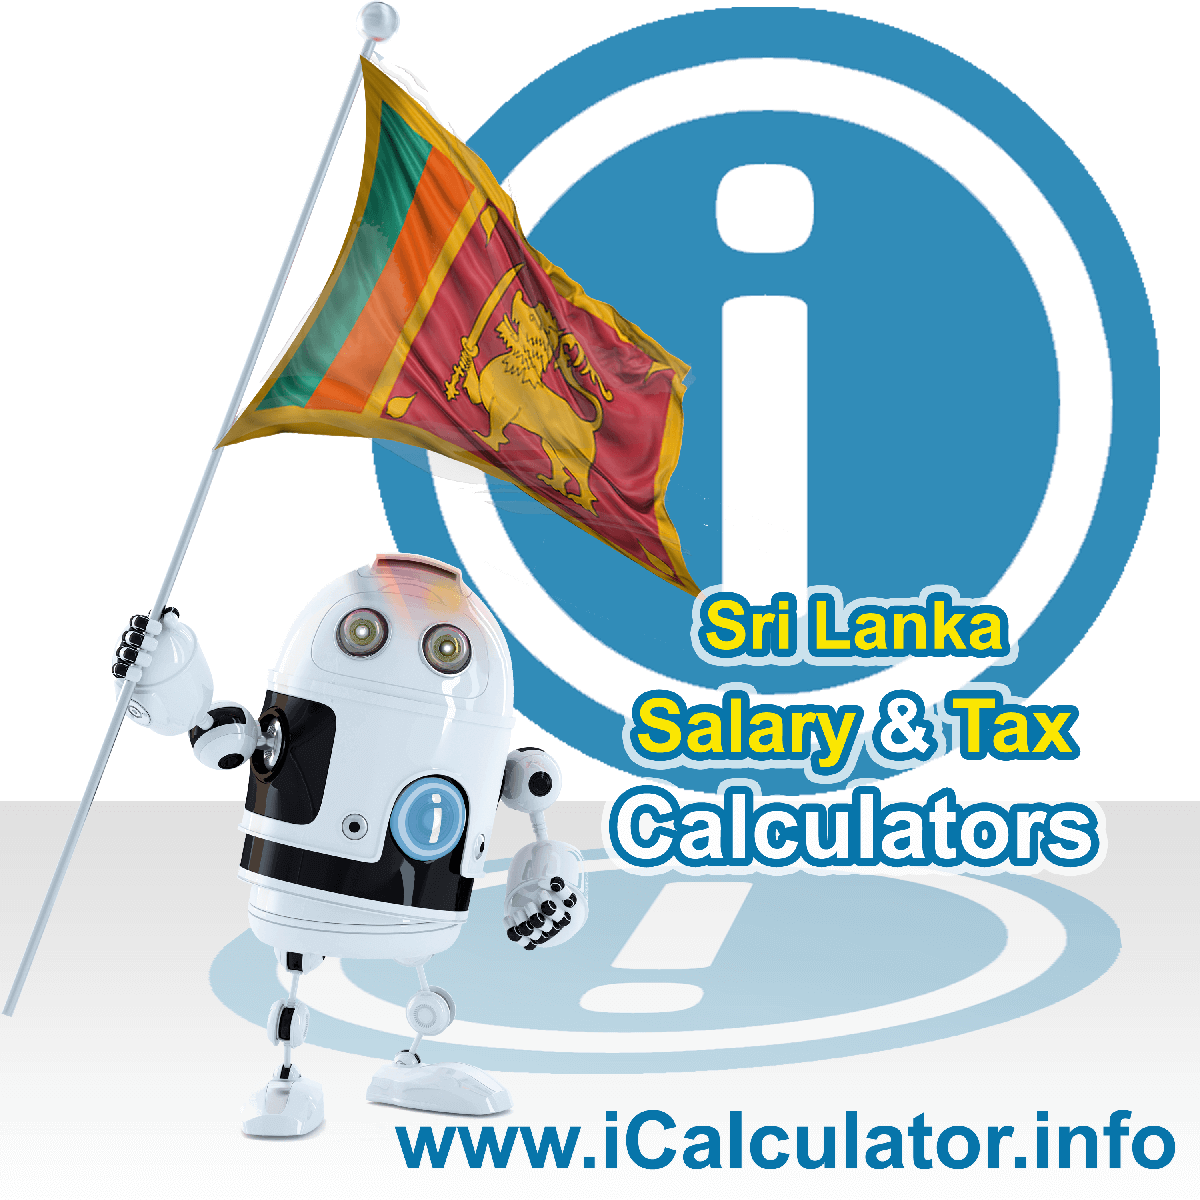 Sri Lanka Wage Calculator. This image shows the Sri Lanka flag and information relating to the tax formula for the Sri Lanka Tax Calculator